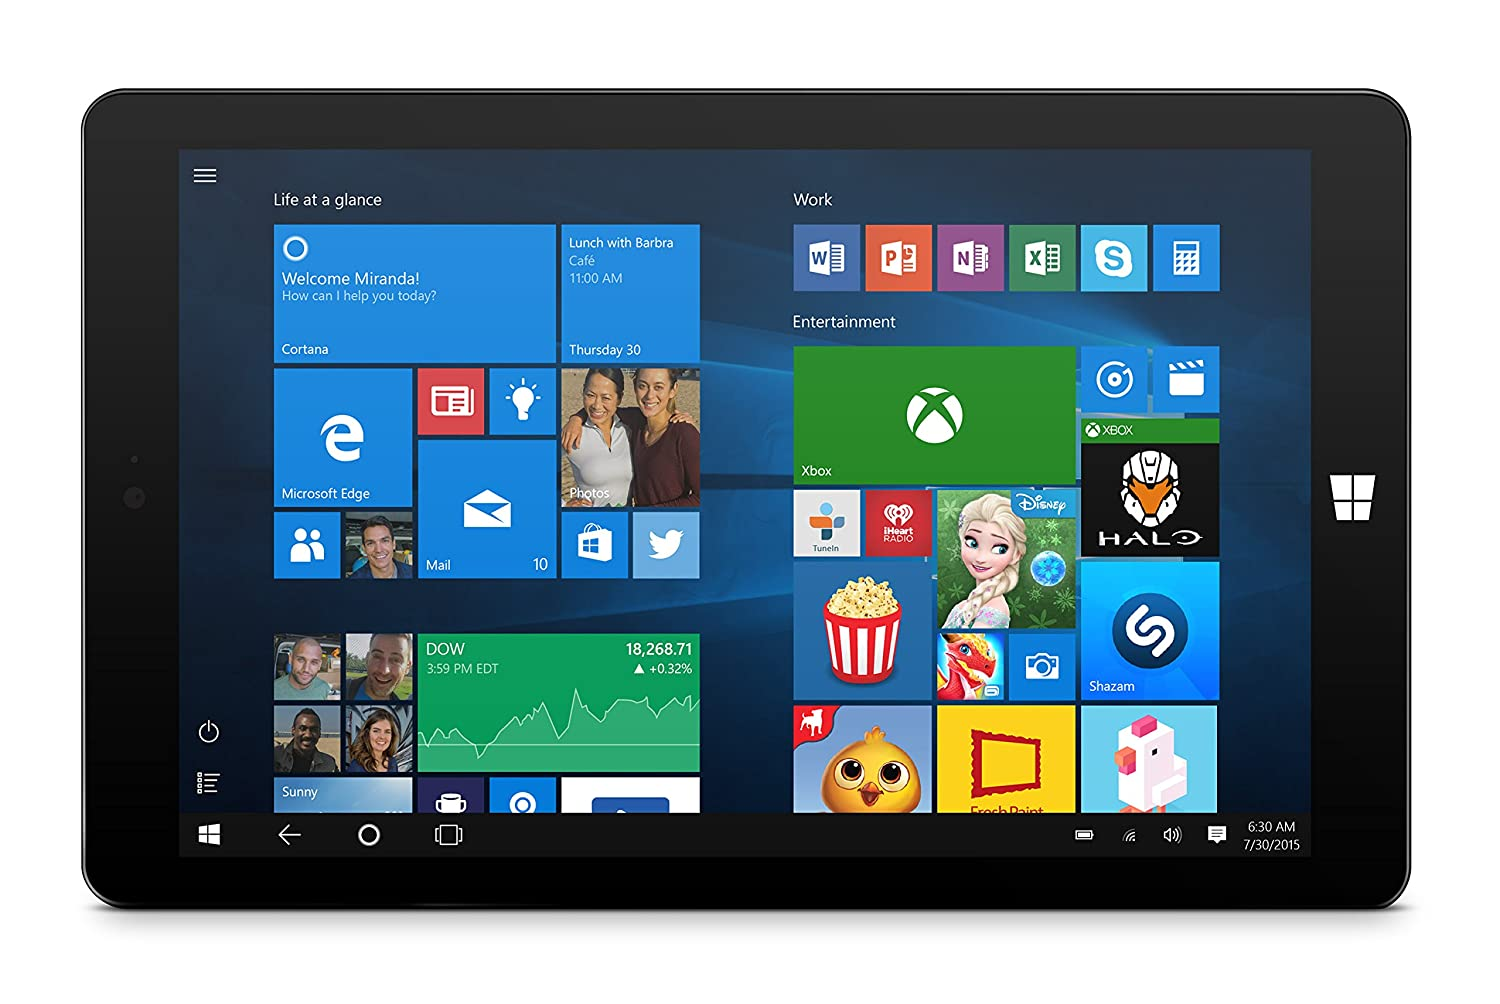 db2a6340119 Amazon.com: Ematic 8-inch Windows 10, HD Quad-Core 32GB Tablet with WiFi  Intel and Docking Keyboard, Black: Computers & Accessories